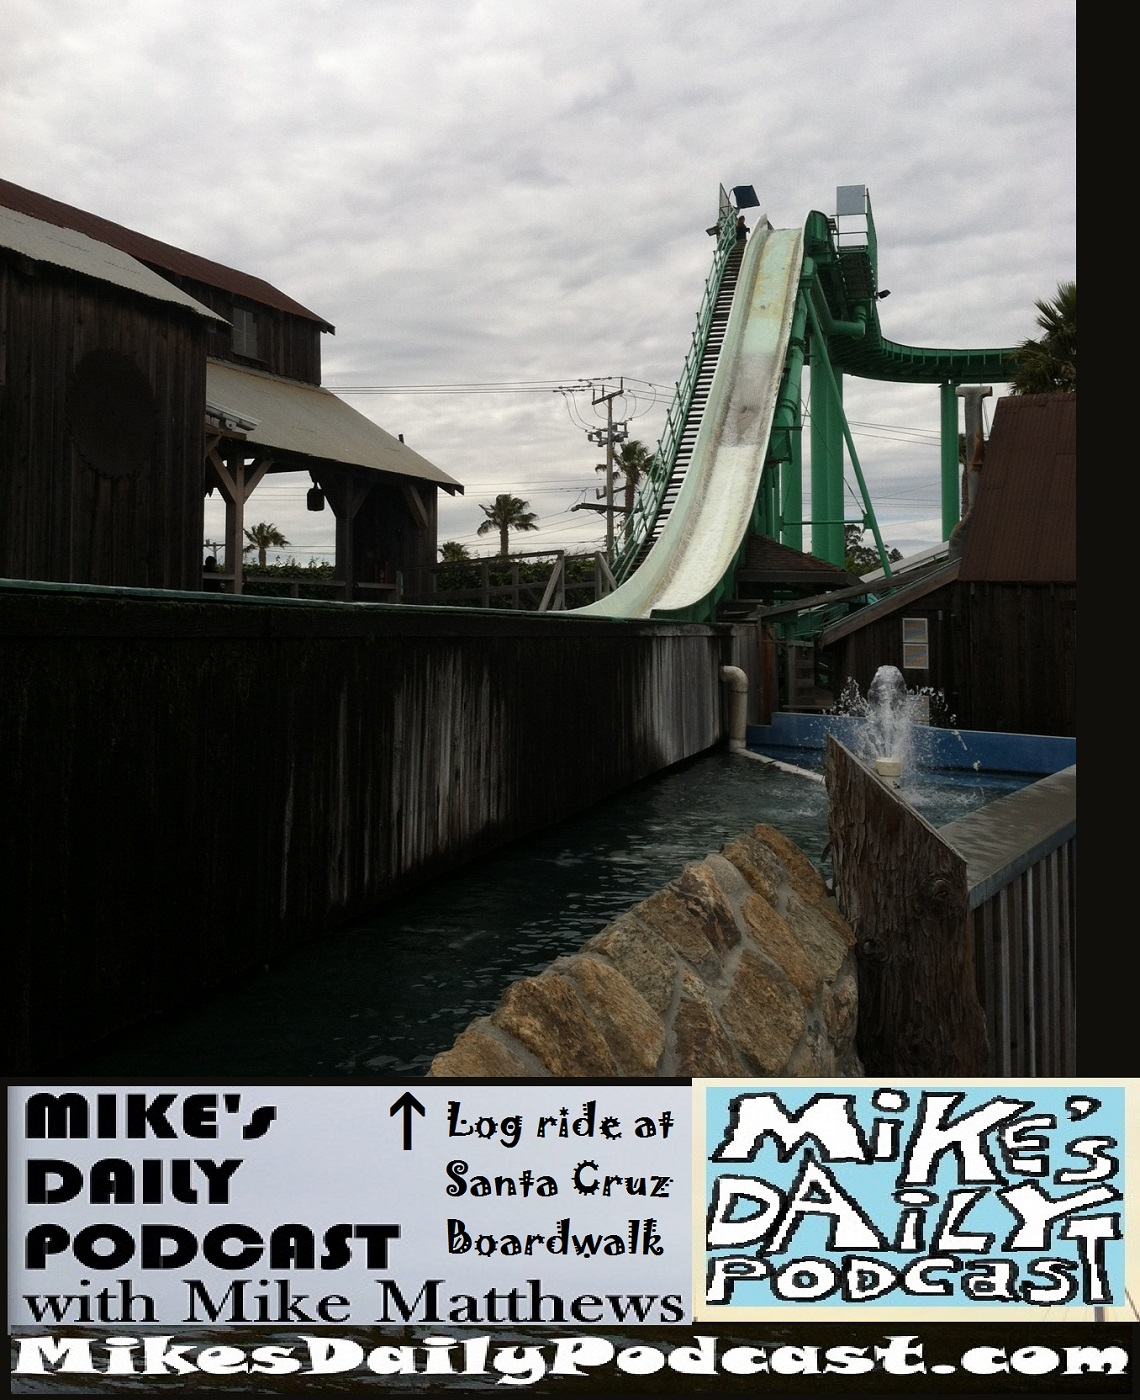 MIKEs DAILY PODCAST 1121 Santa Cruz Boardwalk Log Ride